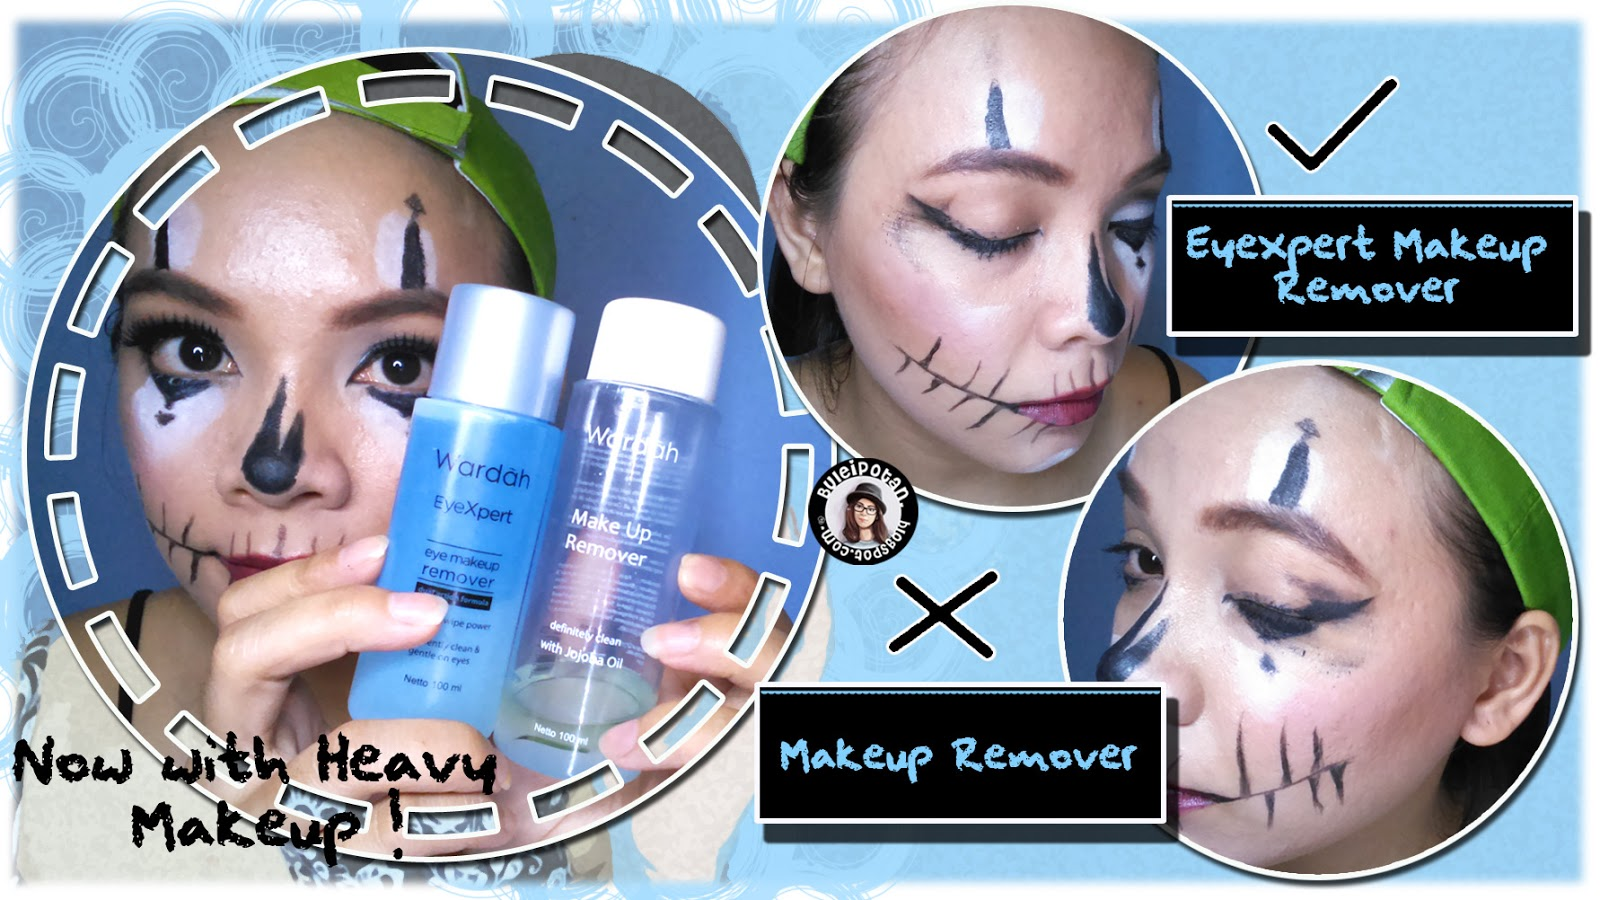 [Product Review] Makeup Remover Lokal Favorite gw